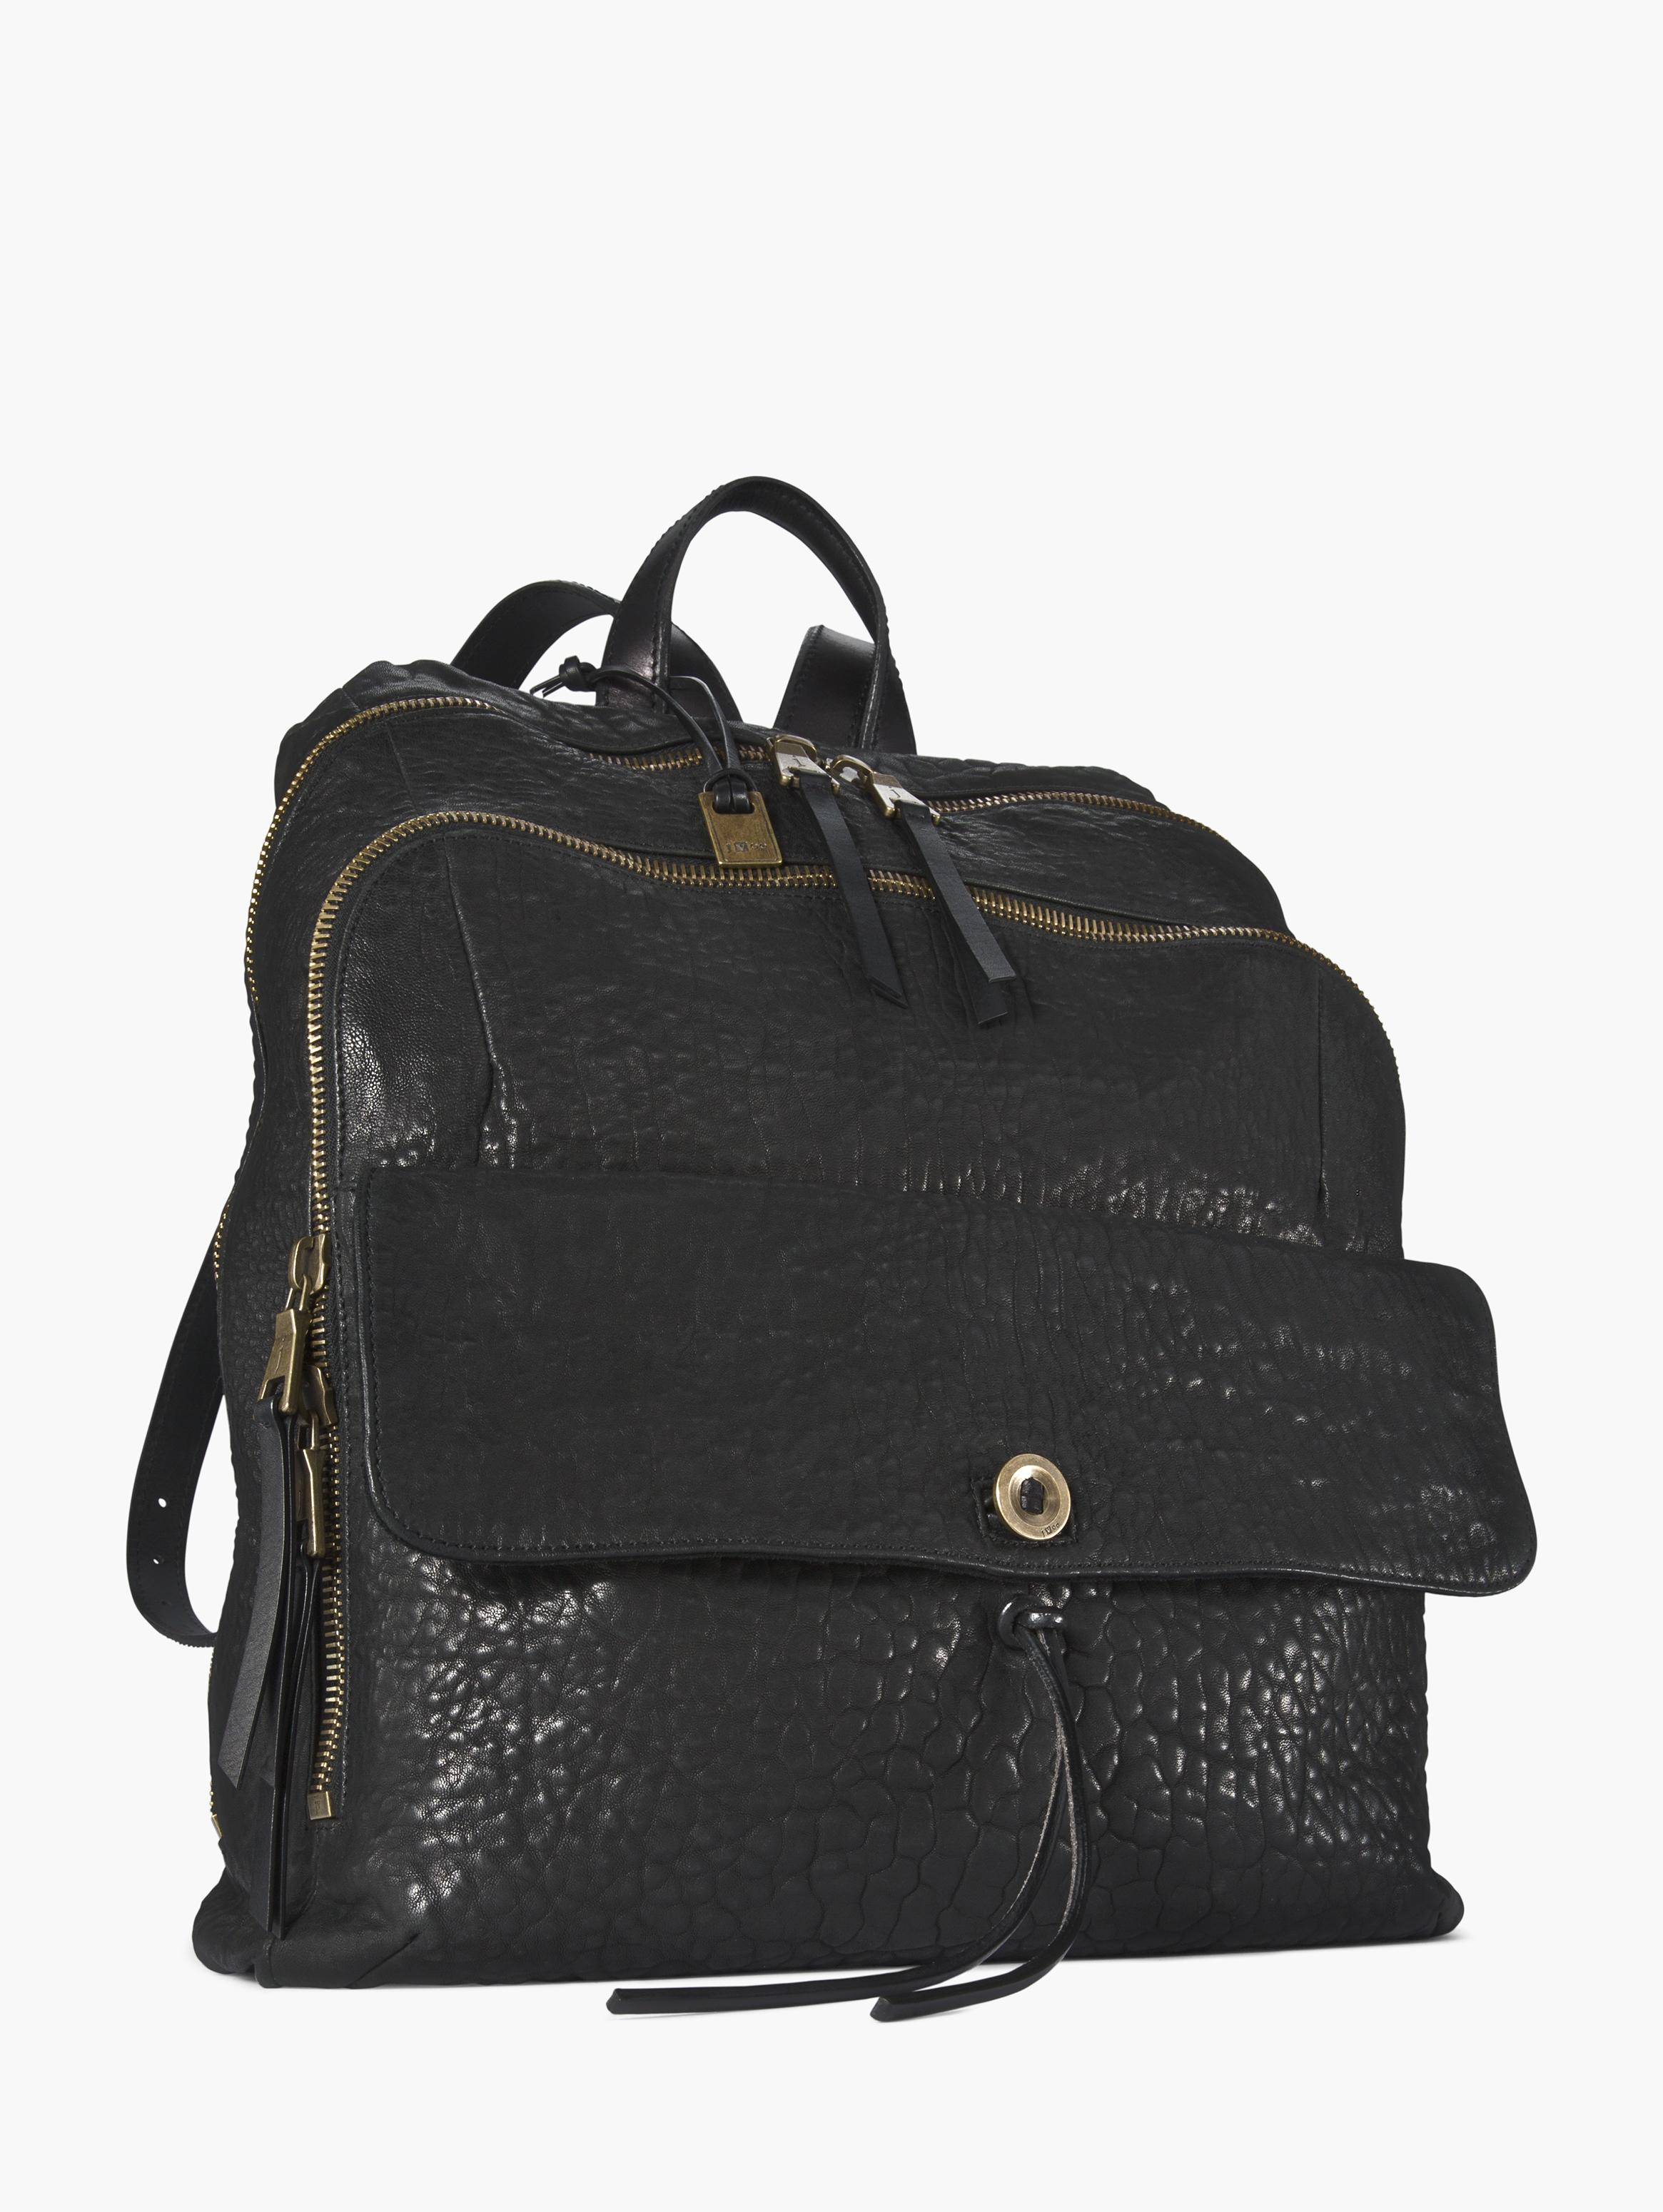 Richards Black Leather Backpack